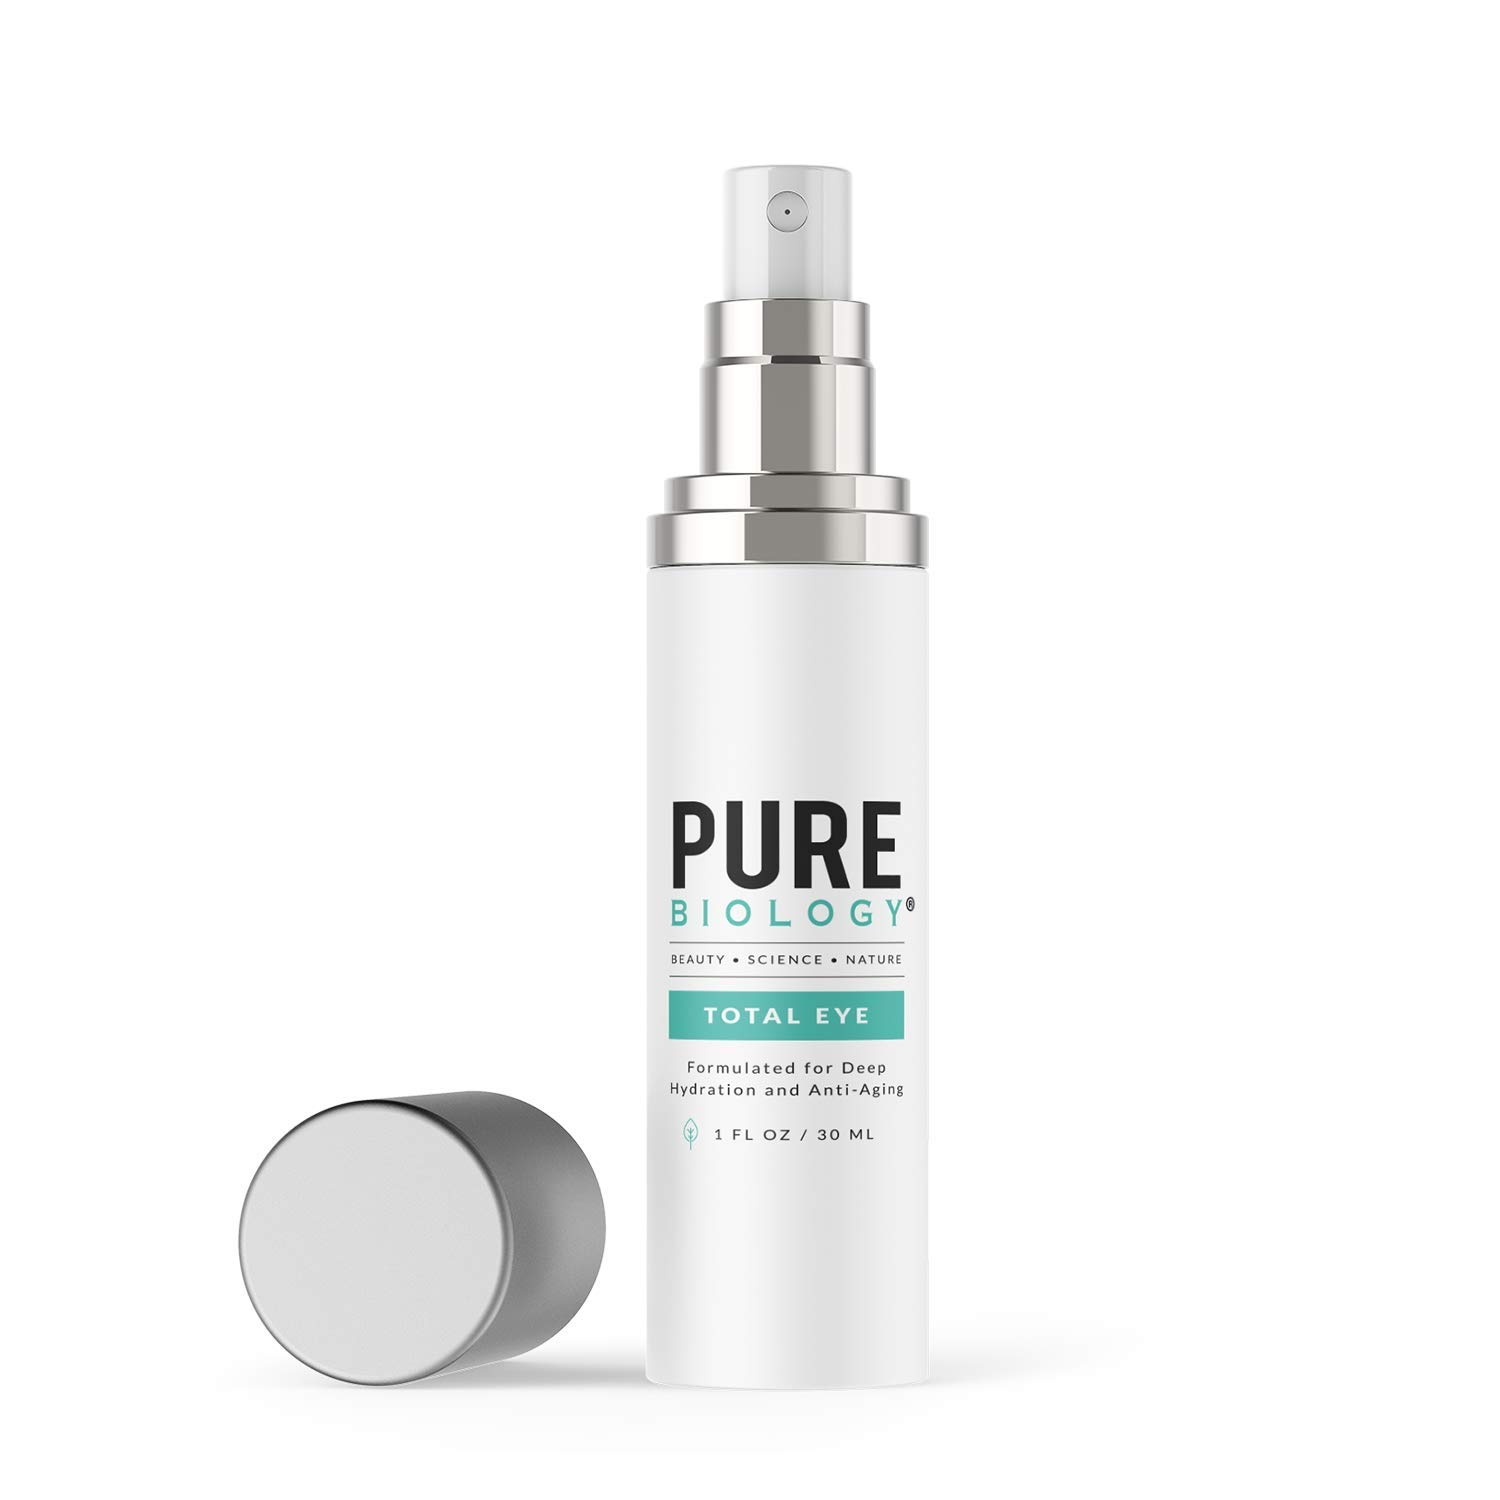 Pure Biology is The Best Under Eye cream Under $50